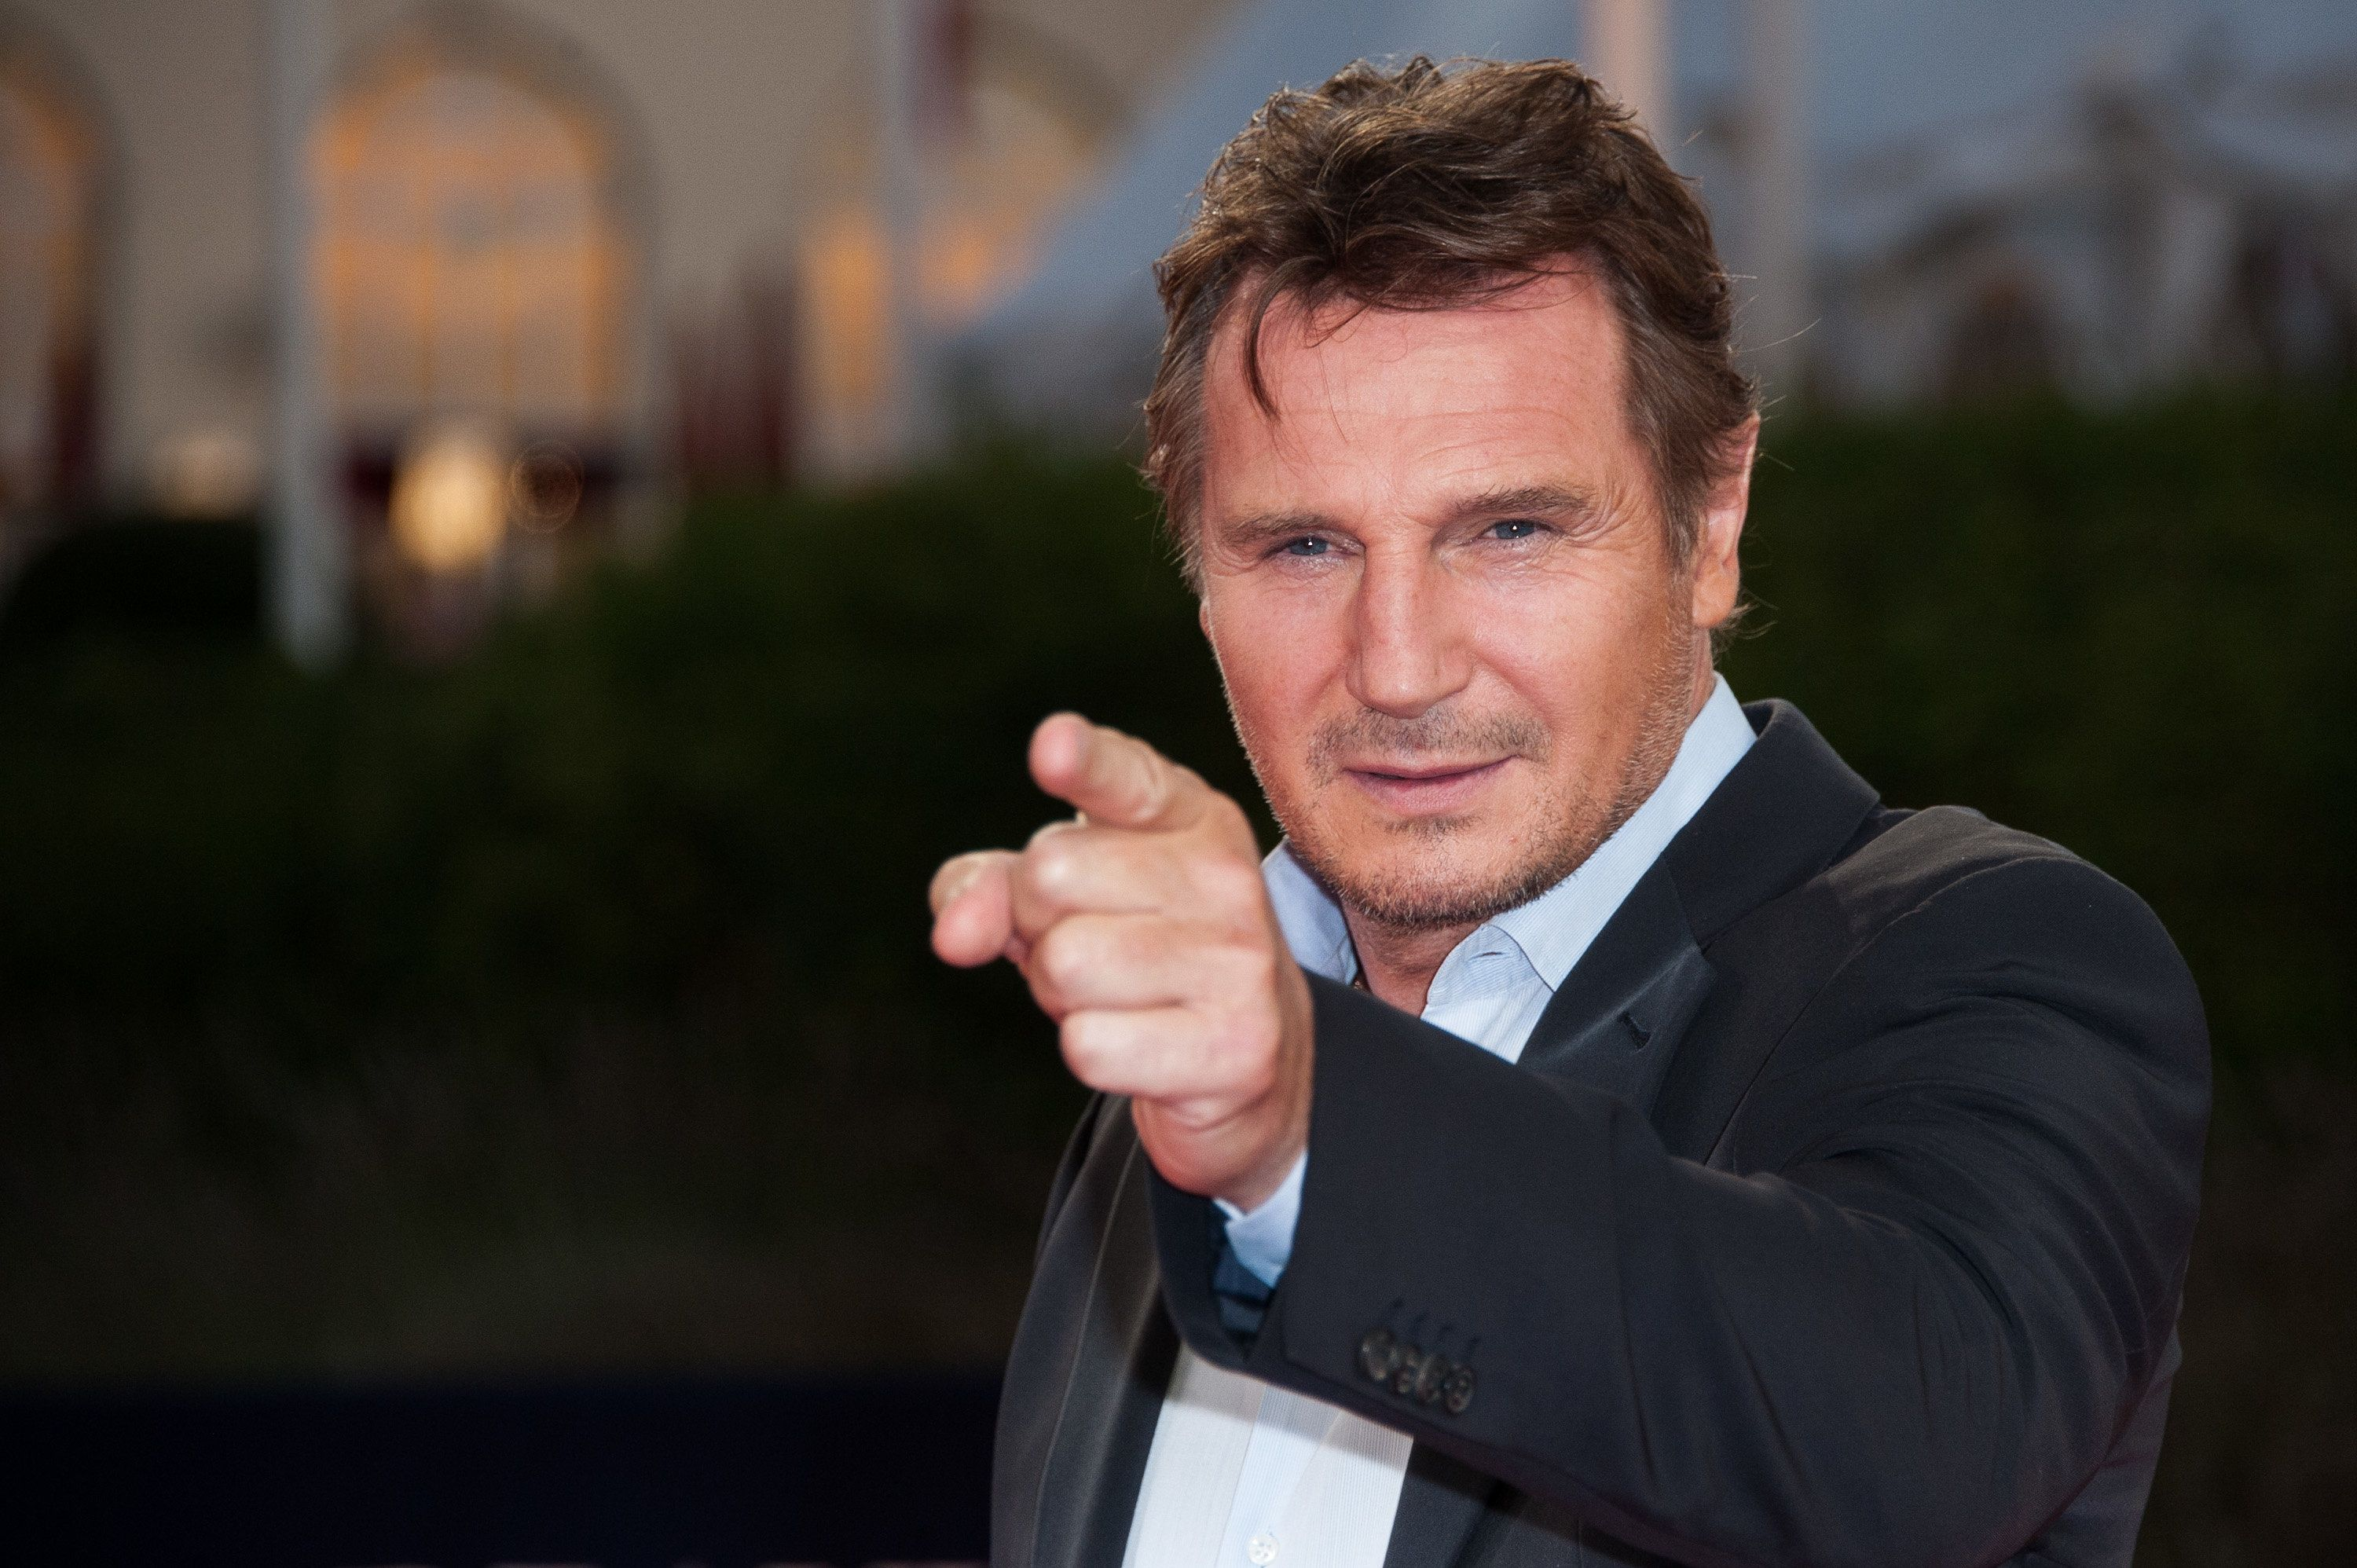 DEAUVILLE, FRANCE - SEPTEMBER 07:  Actor Liam Neeson poses on the red carpet before the screening of his movie 'Taken 2' during the 38th Deauville American Film Festival on September 7, 2012 in Deauville, France.  (Photo by Francois Durand/Getty Images)